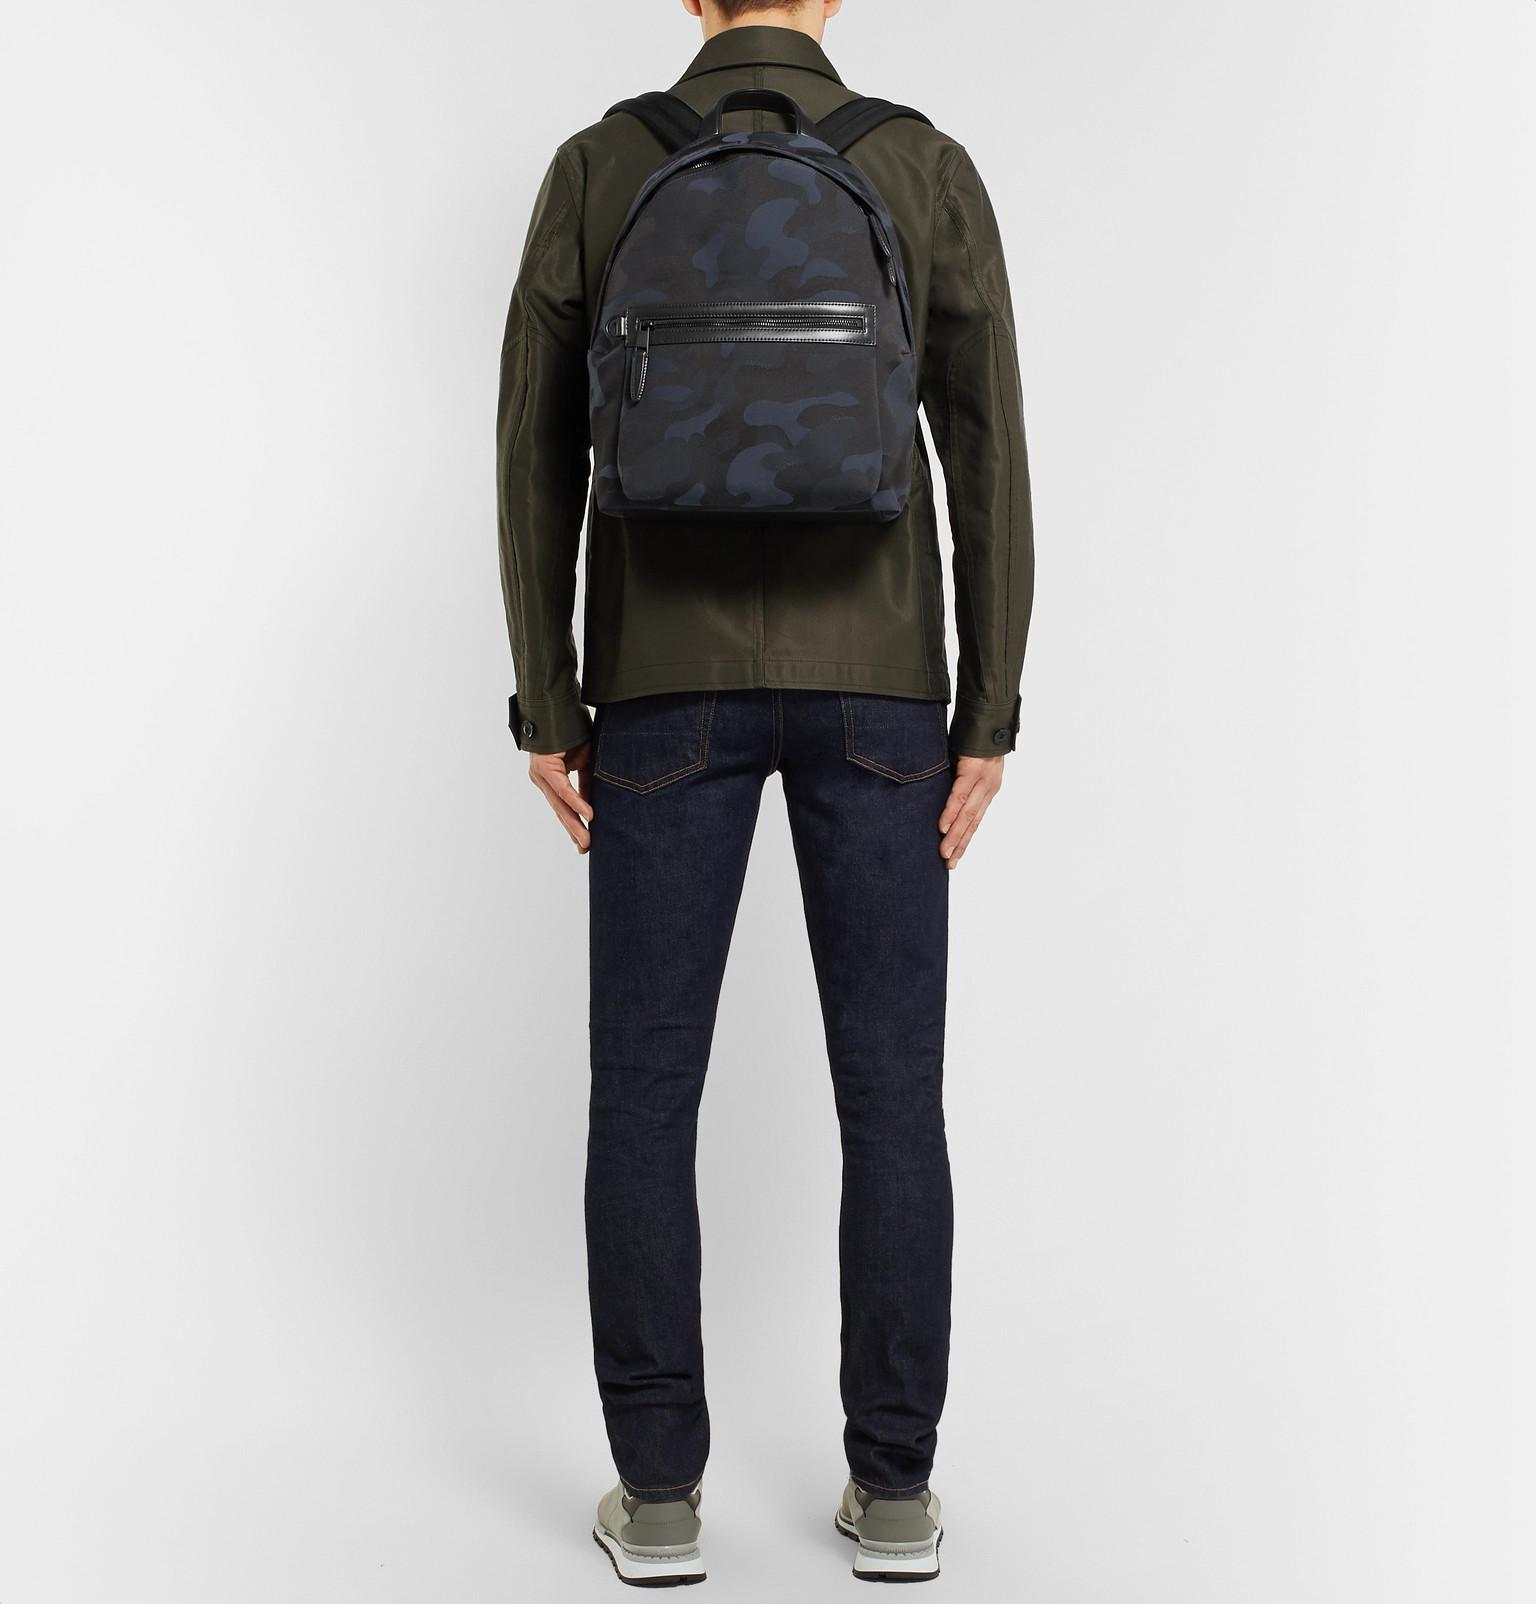 Mulberry - Blue Leather-trimmed Camouflage-print Canvas Backpack for Men -  Lyst. View fullscreen 50a2f32ecc9d1